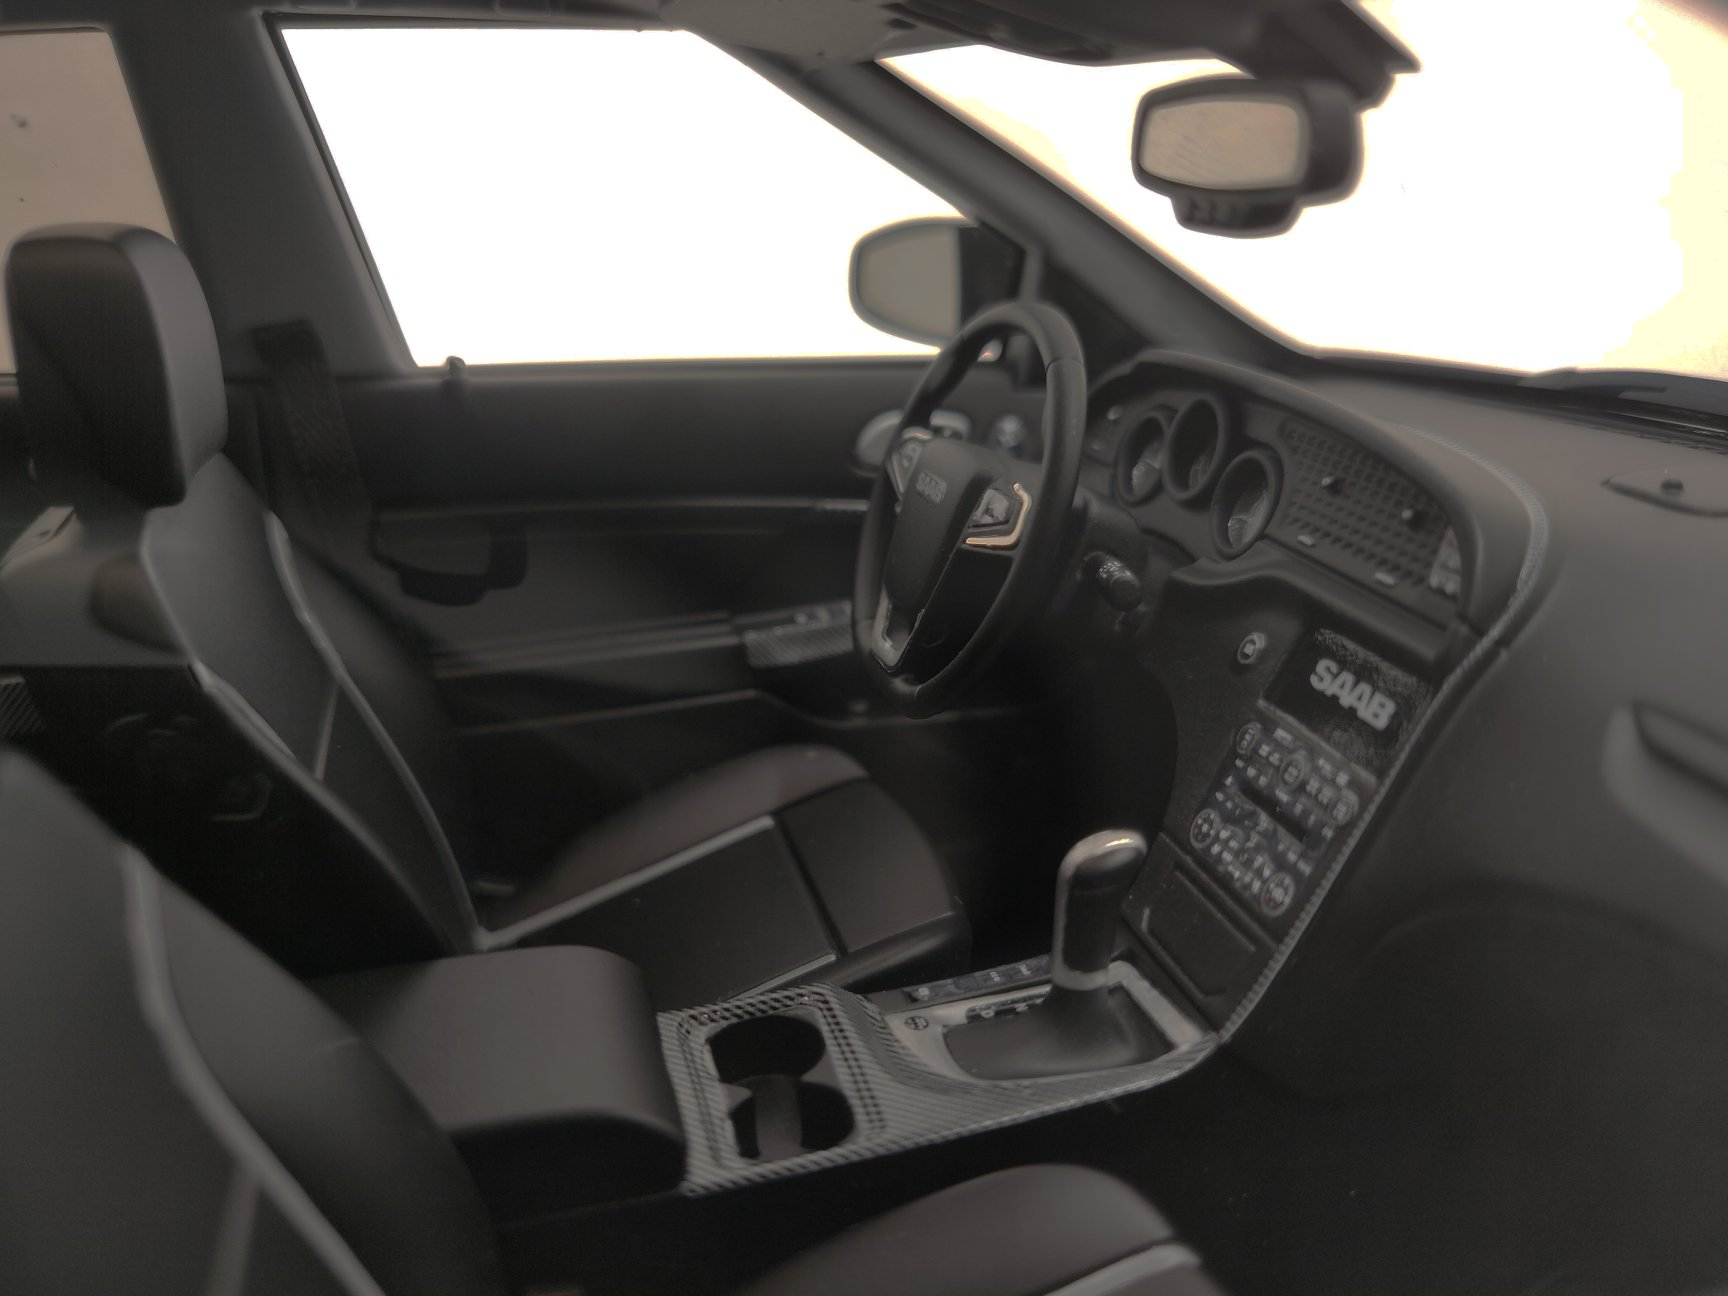 saab-9-4x-dna-collectiles-dna000032-interieur